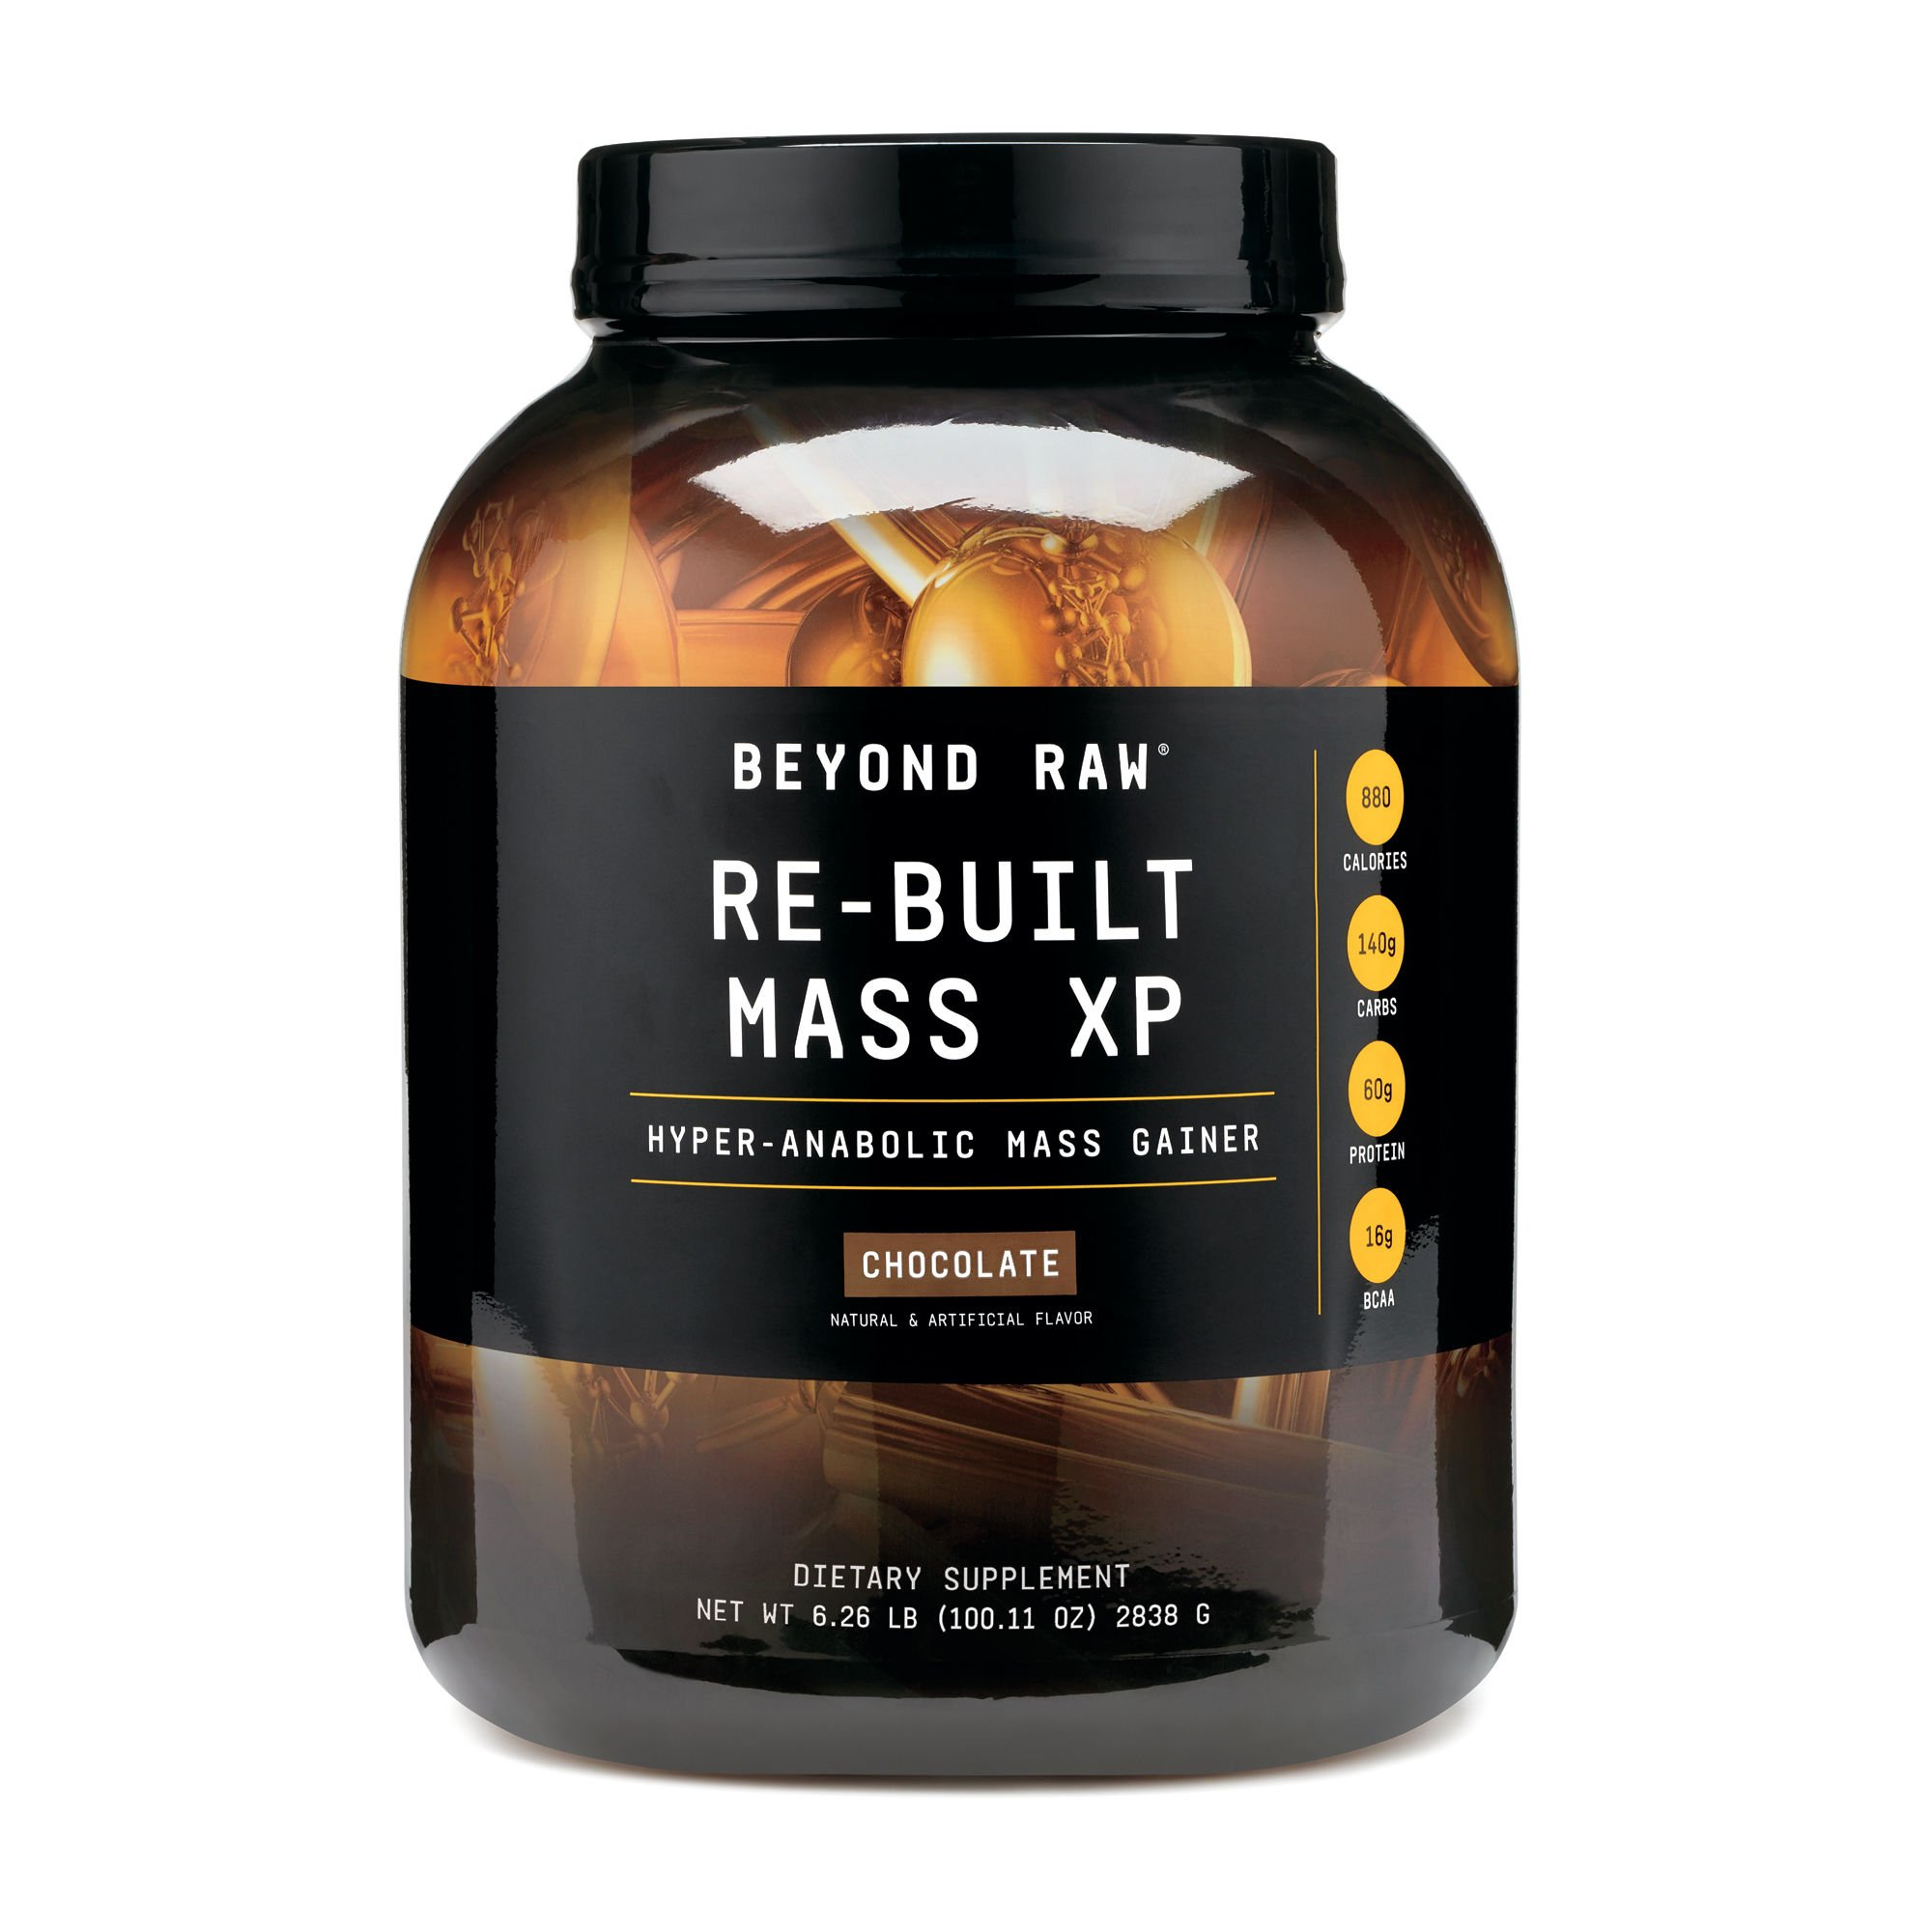 Beyond Raw Re-Built Mass XP, Chocolate, 11 Servings, Contains 880 Calories, 140g of Carbohydrates and 60g of Protein